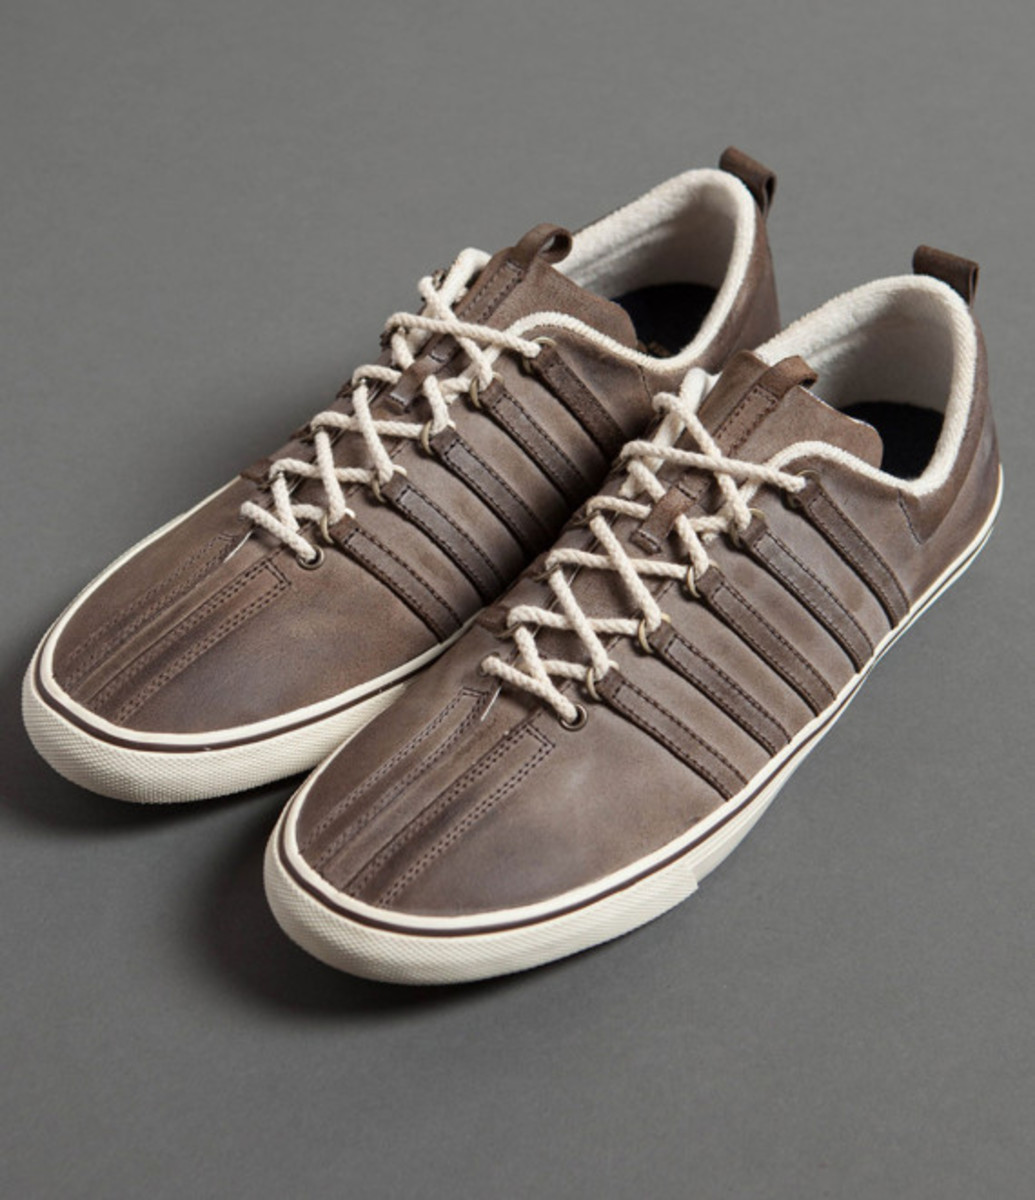 k-swiss-by-billy-reid-spring-summer-2013-collection-05